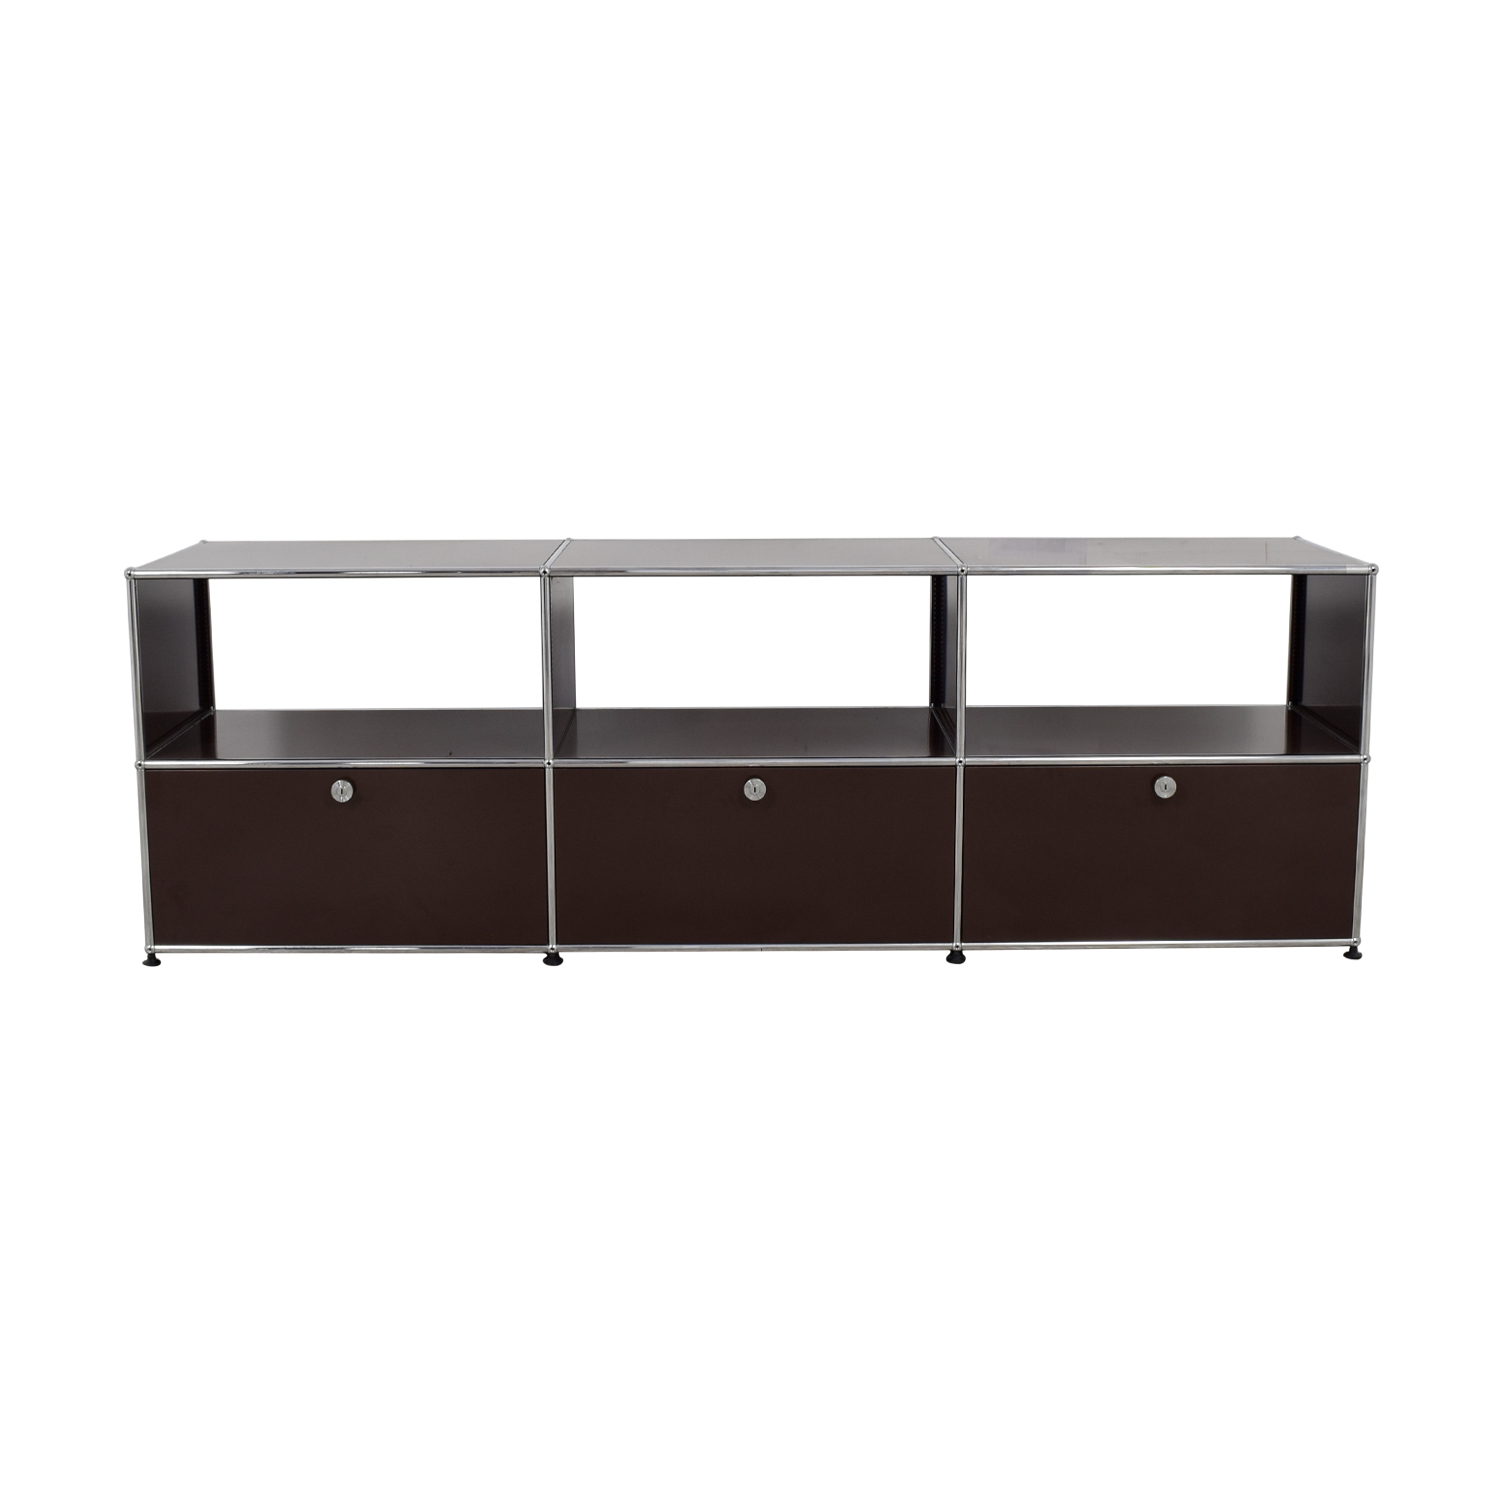 Console With Drawers 74 Off Usm Usm Tv Console With Three Drawers Storage